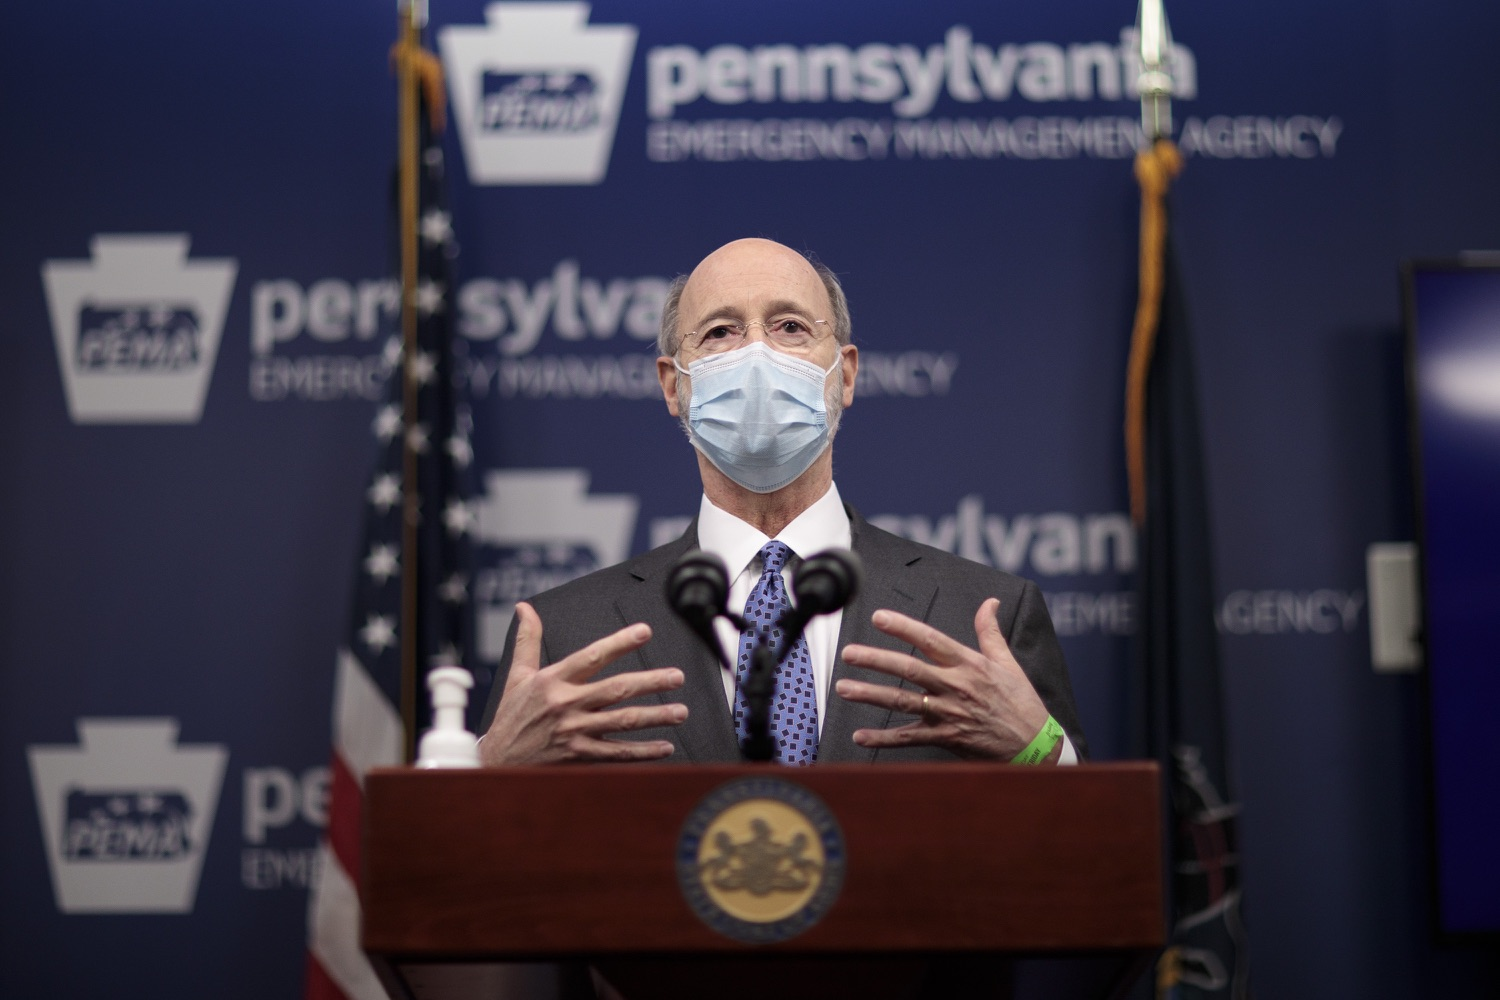 """<a href=""""https://filesource.wostreaming.net/commonwealthofpa/photo/18472_gov_vaccine_dz_07.jpg"""" target=""""_blank"""">⇣Download Photo<br></a>Pennsylvania Governor Tom Wolf speaks at the press conference.  The commonwealths COVID-19 vaccination distribution plan was designed to be fluid and flexible to meet guidance and recommendations from the federal government. Today, Governor Tom Wolf and Secretary of Health Dr. Rachel Levine announced the fourth version of the plan, detailing the updates and how the state is working to ensure safe, swift implementation. Harrisburg, PA  January 8, 2021"""